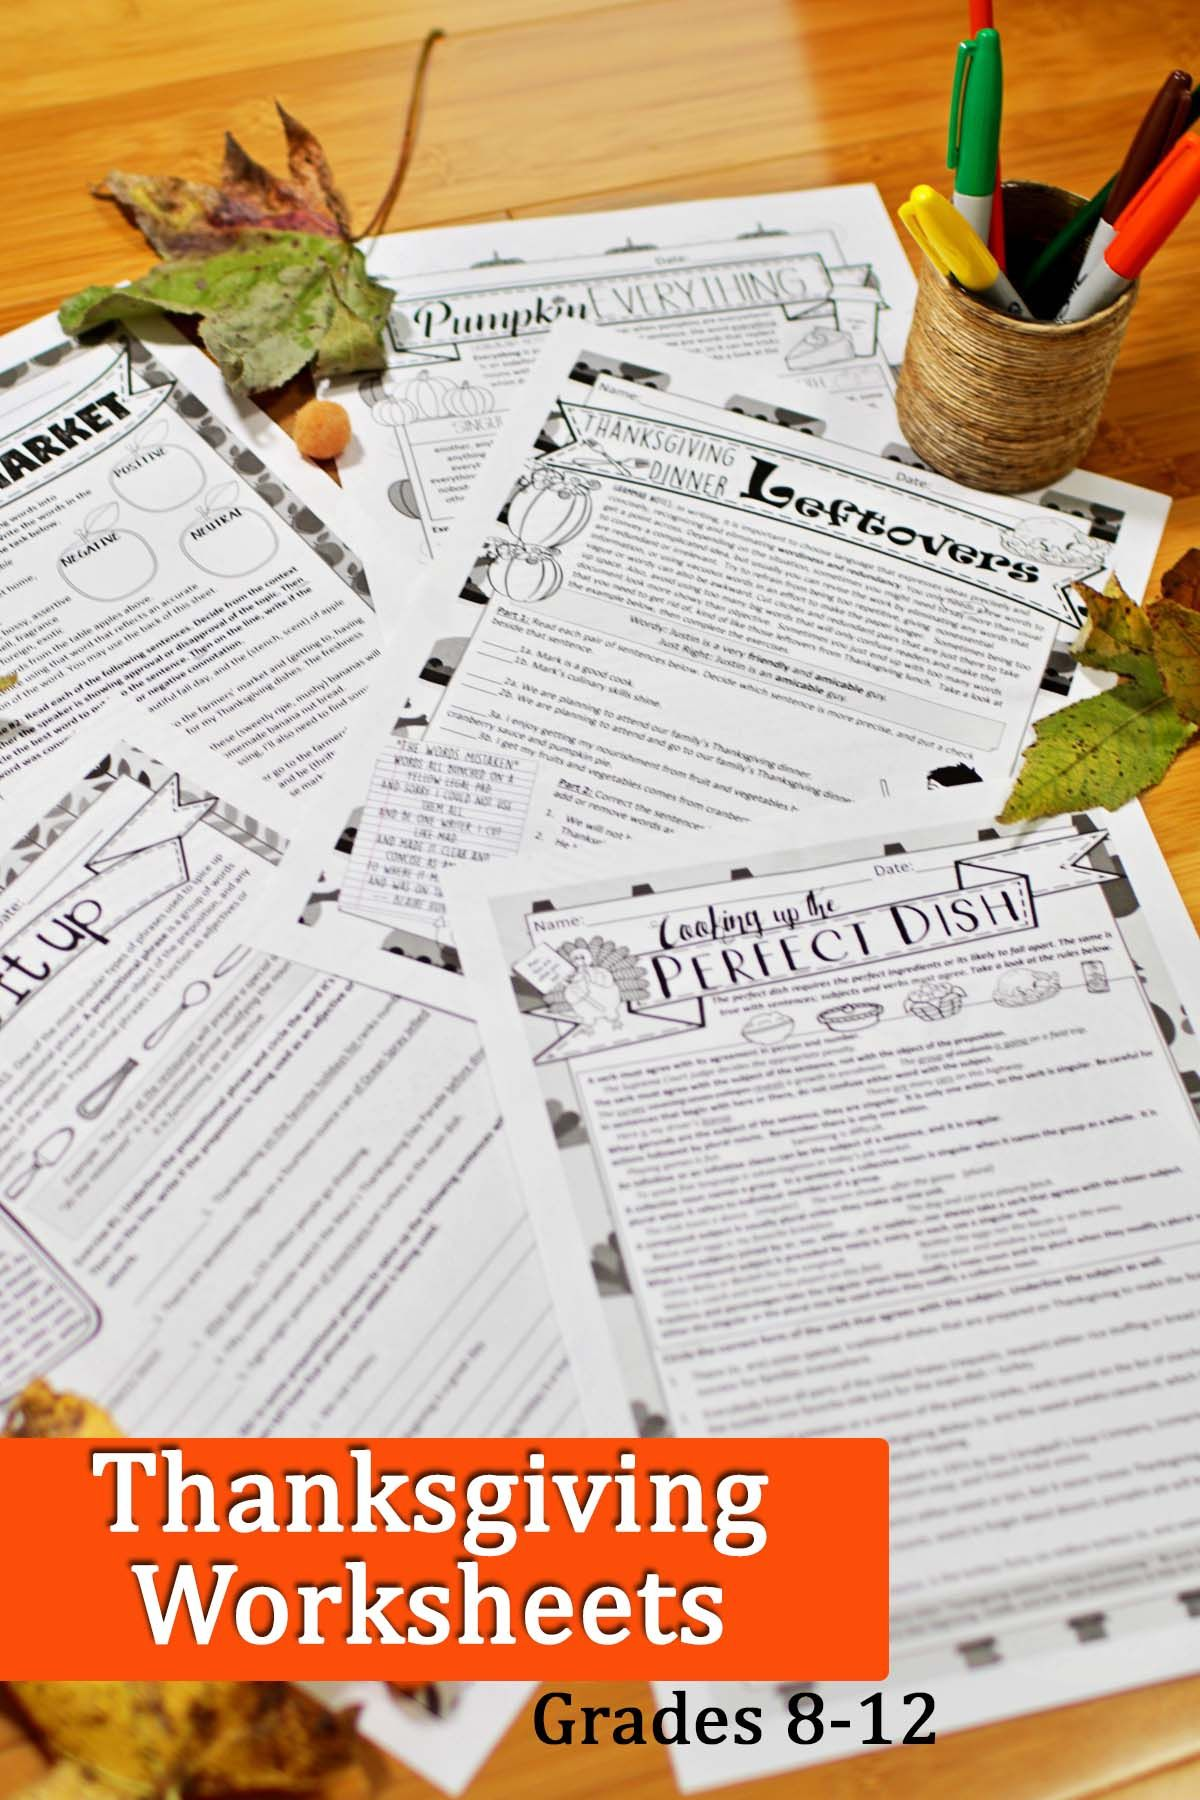 11+ Thanksgiving crafts for middle schoolers ideas in 2021